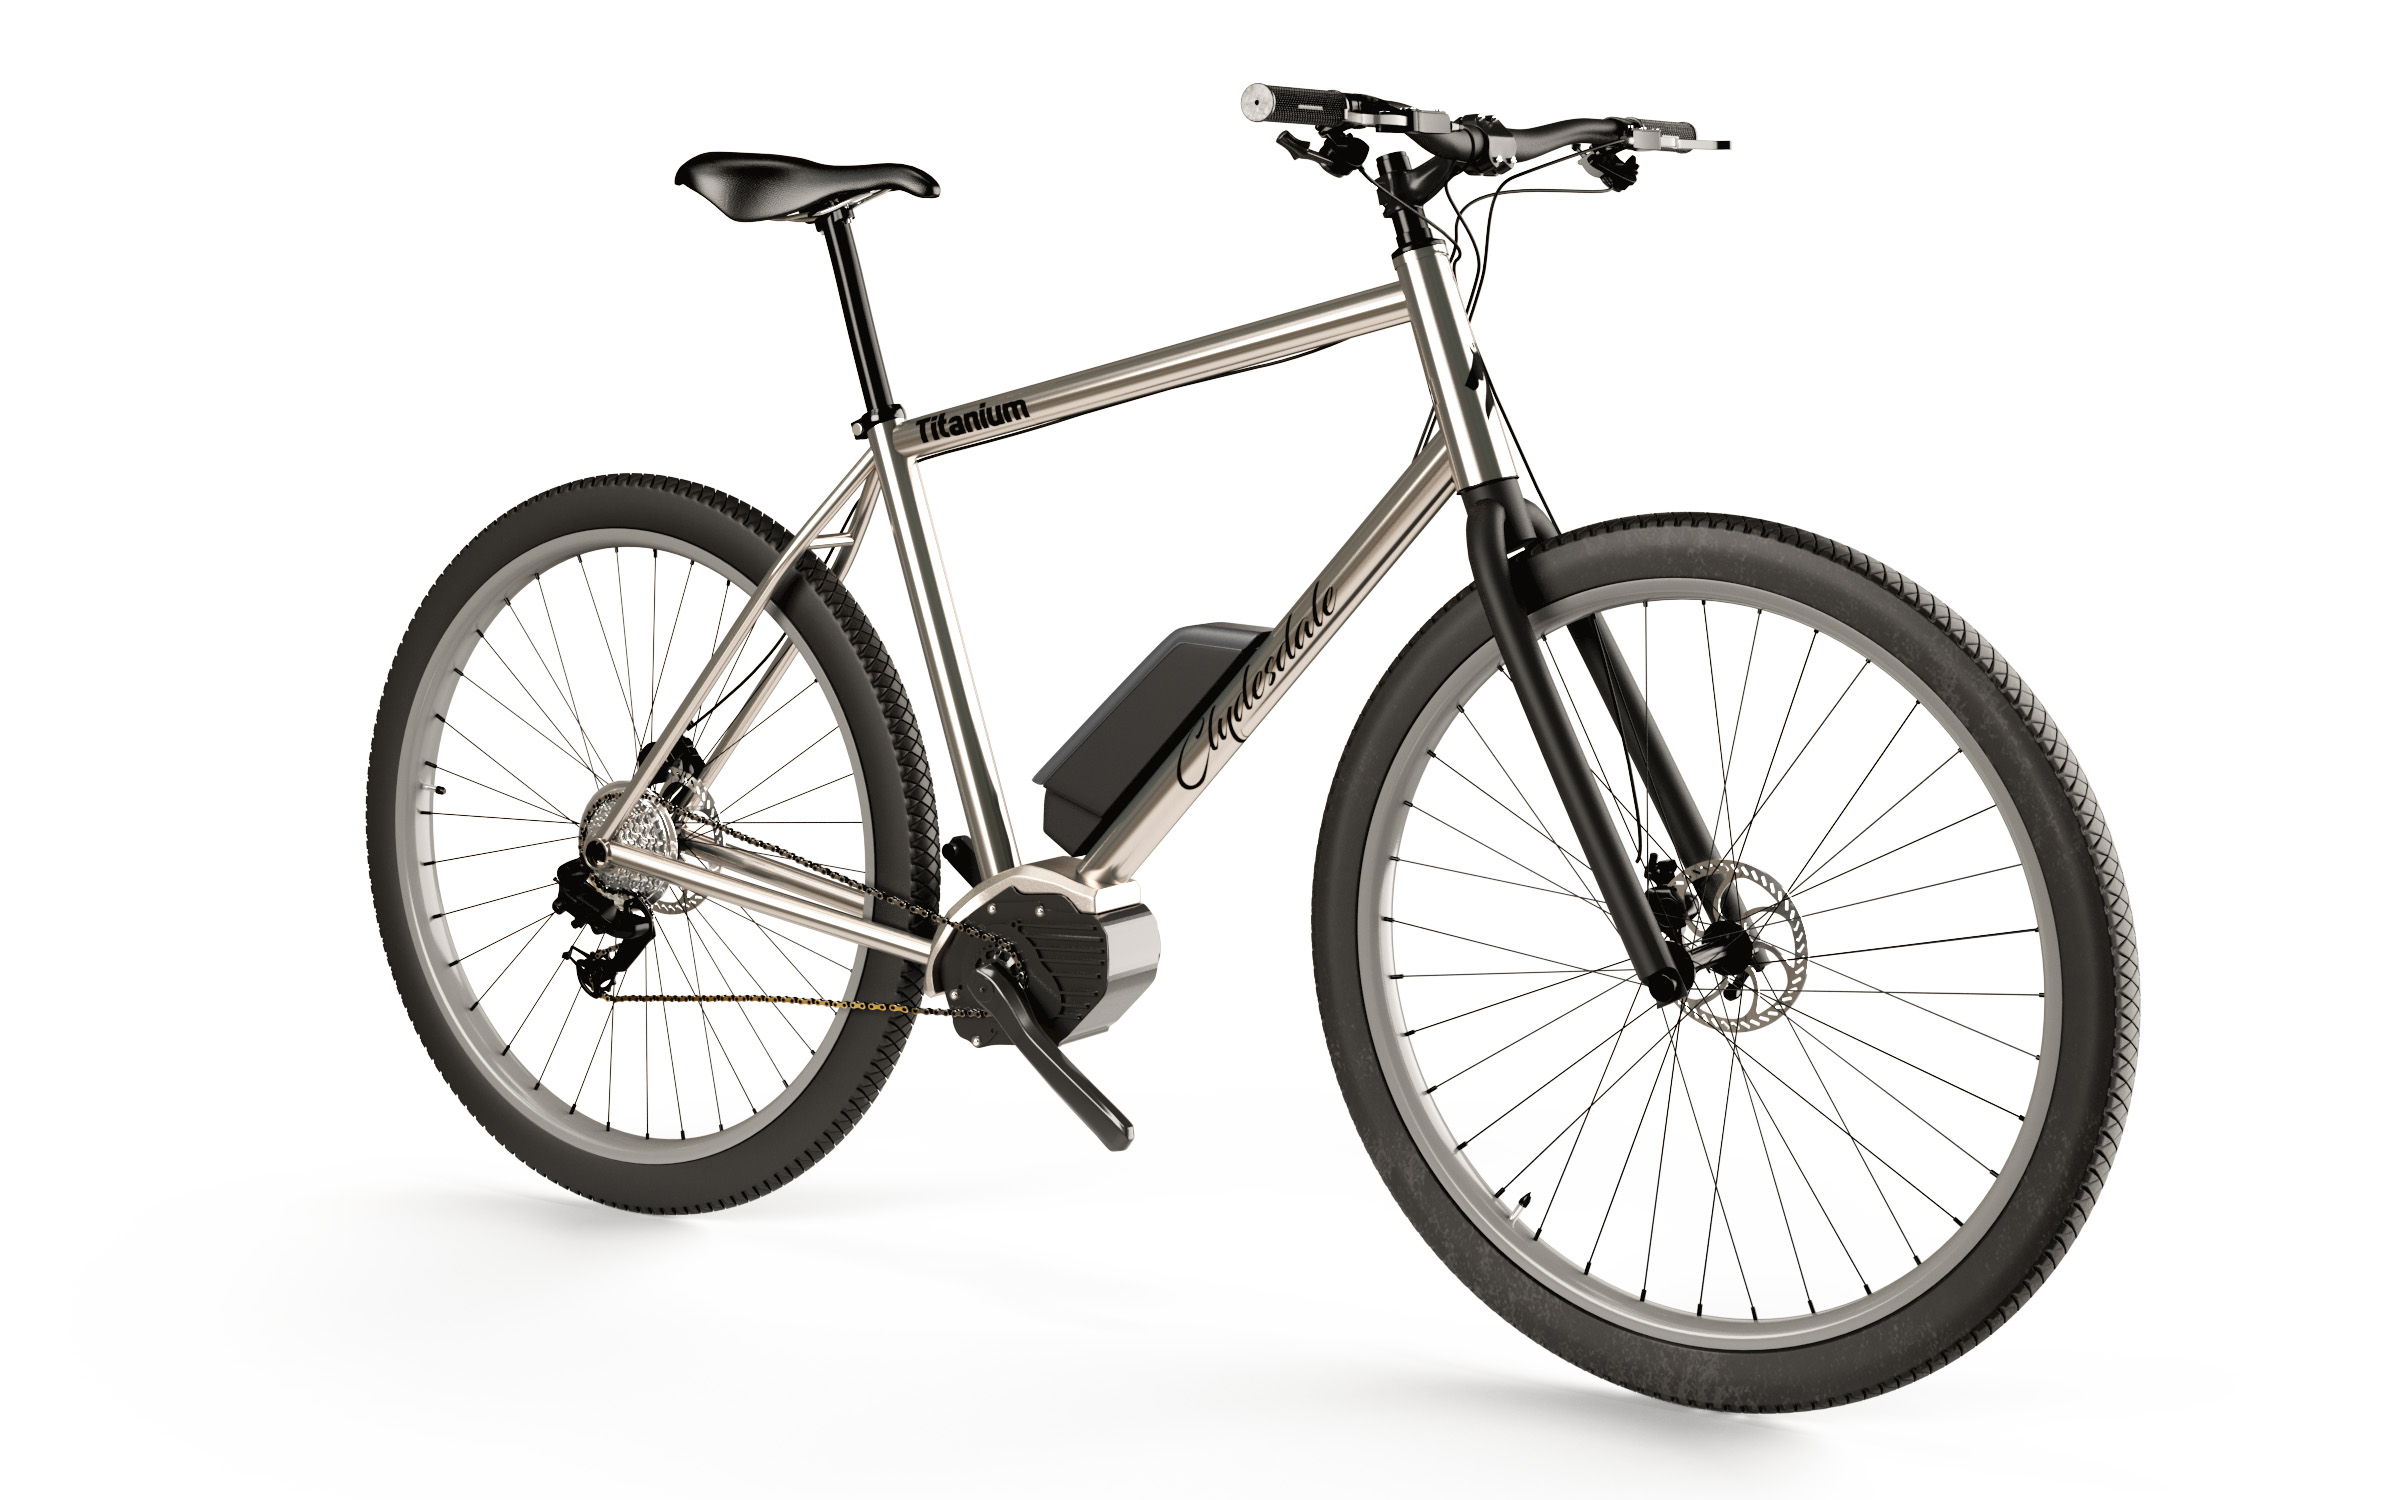 Clydesdale eBFG - 32 inch wheel electric bicycle for tall guys